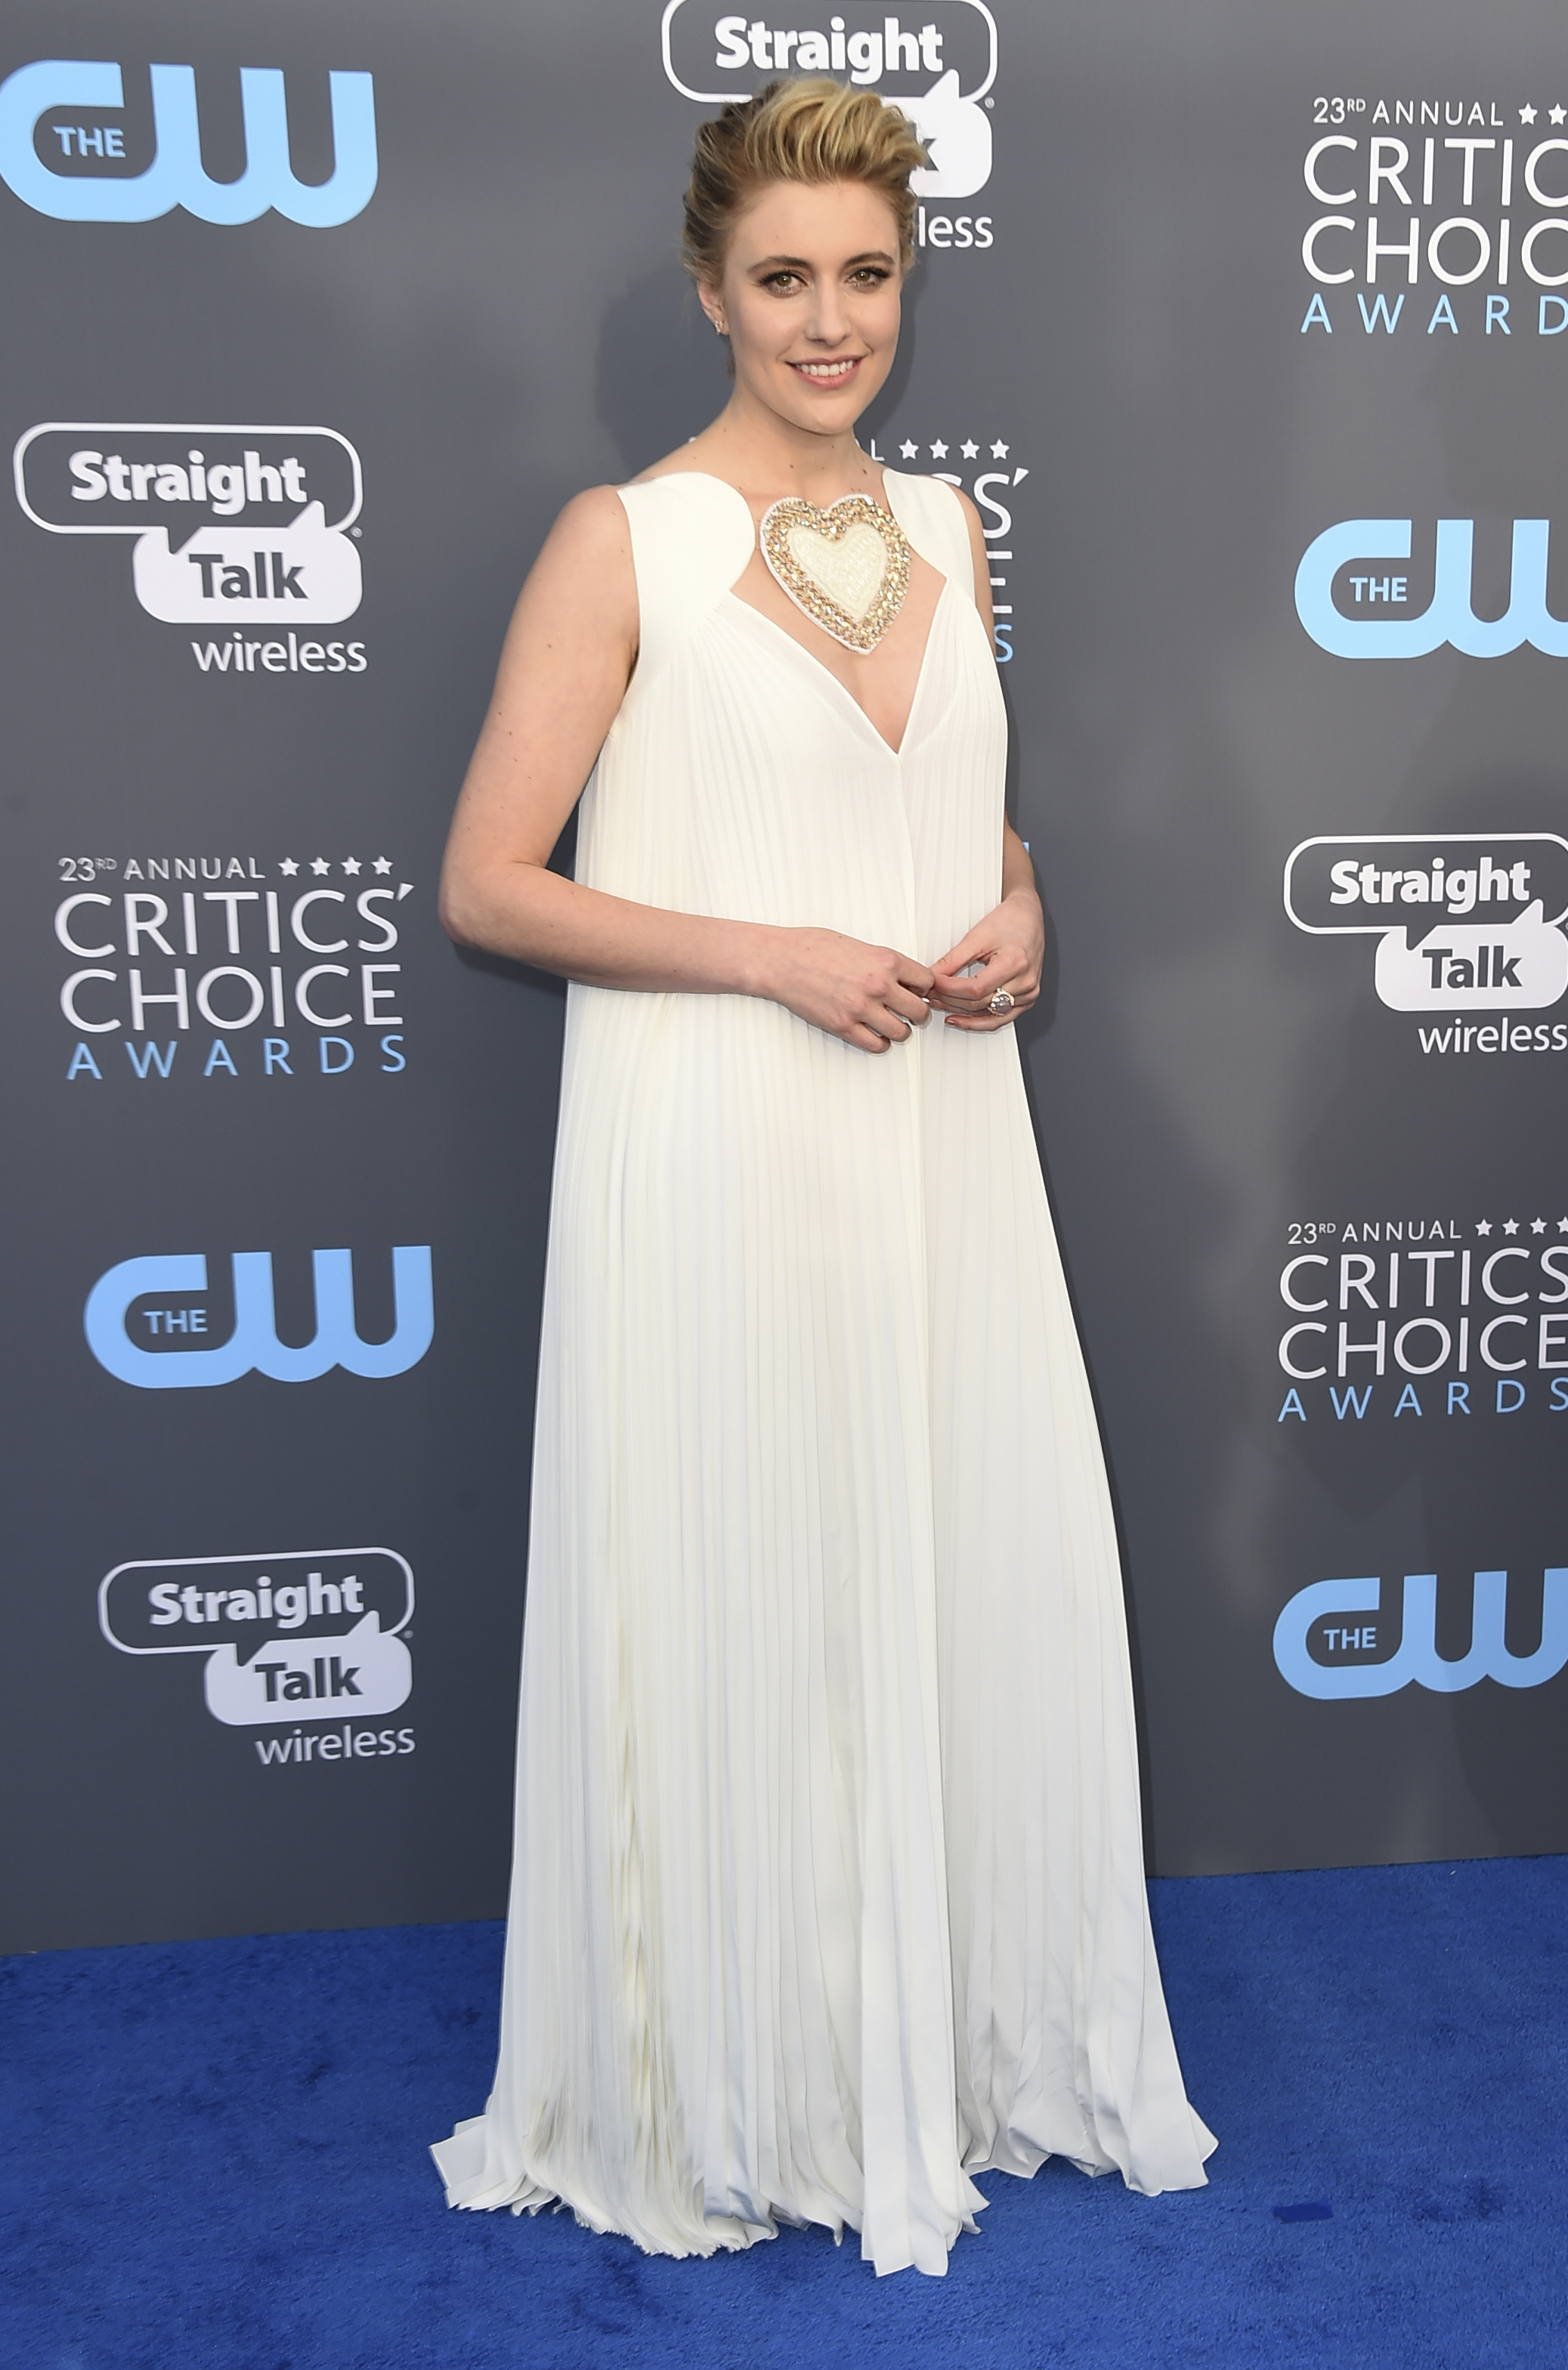 <div class='meta'><div class='origin-logo' data-origin='AP'></div><span class='caption-text' data-credit='Jordan Strauss/Invision/AP'>Greta Gerwig arrives at the 23rd annual Critics' Choice Awards at the Barker Hangar on Thursday, Jan. 11, 2018, in Santa Monica, Calif.</span></div>